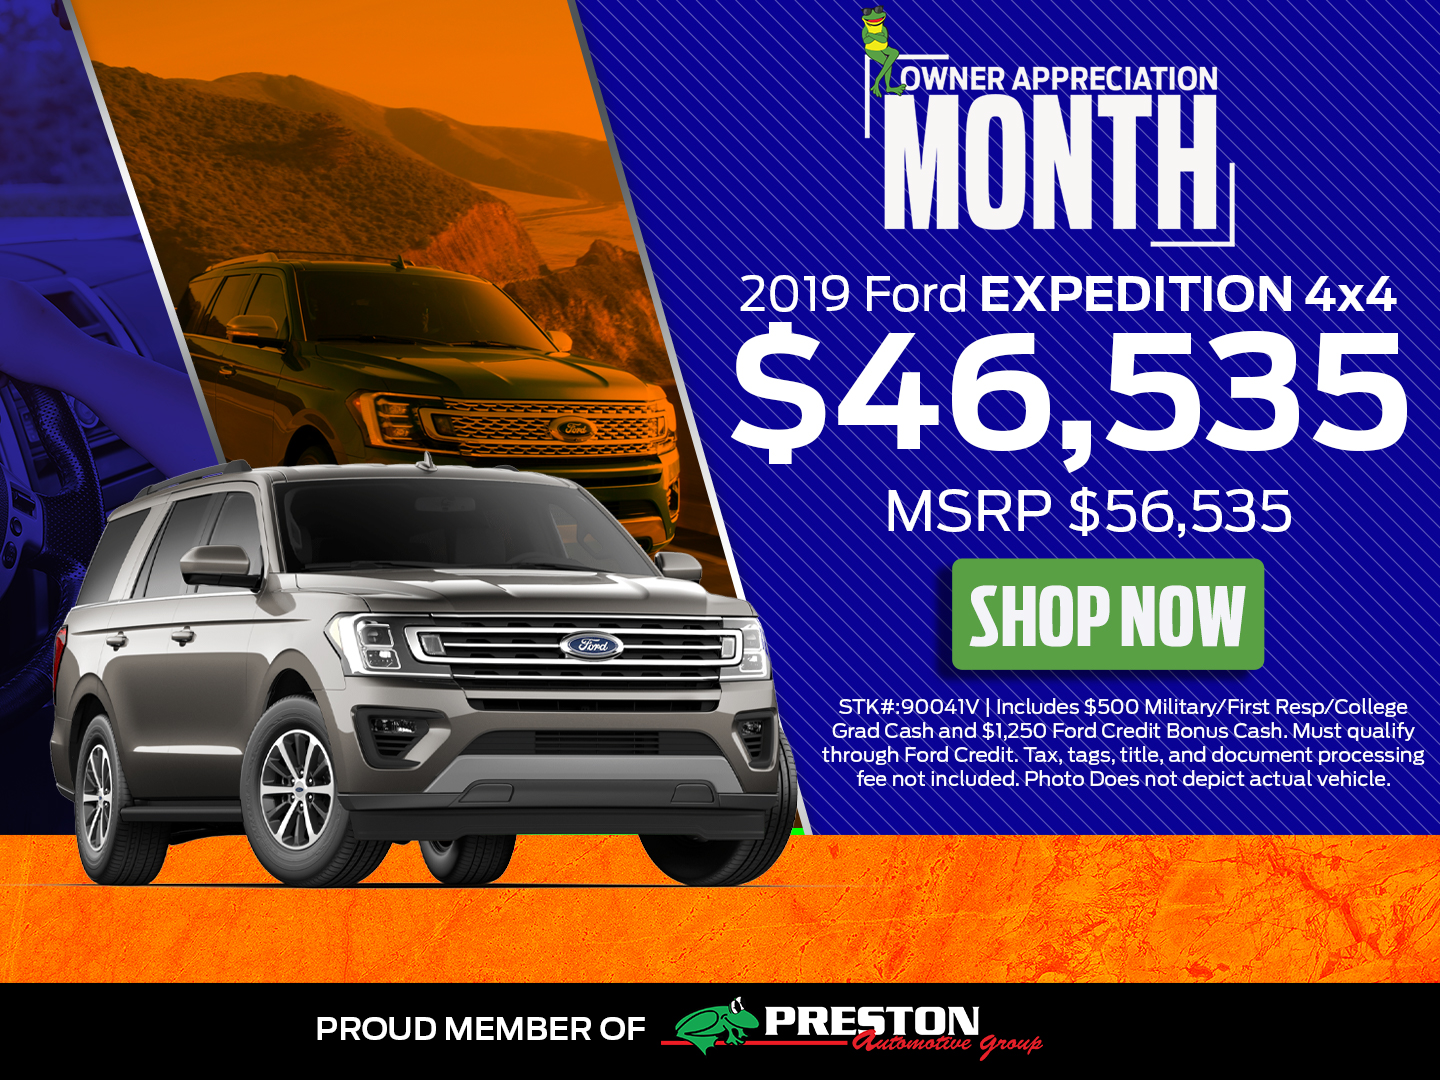 2019 Ford Expedition 4x4